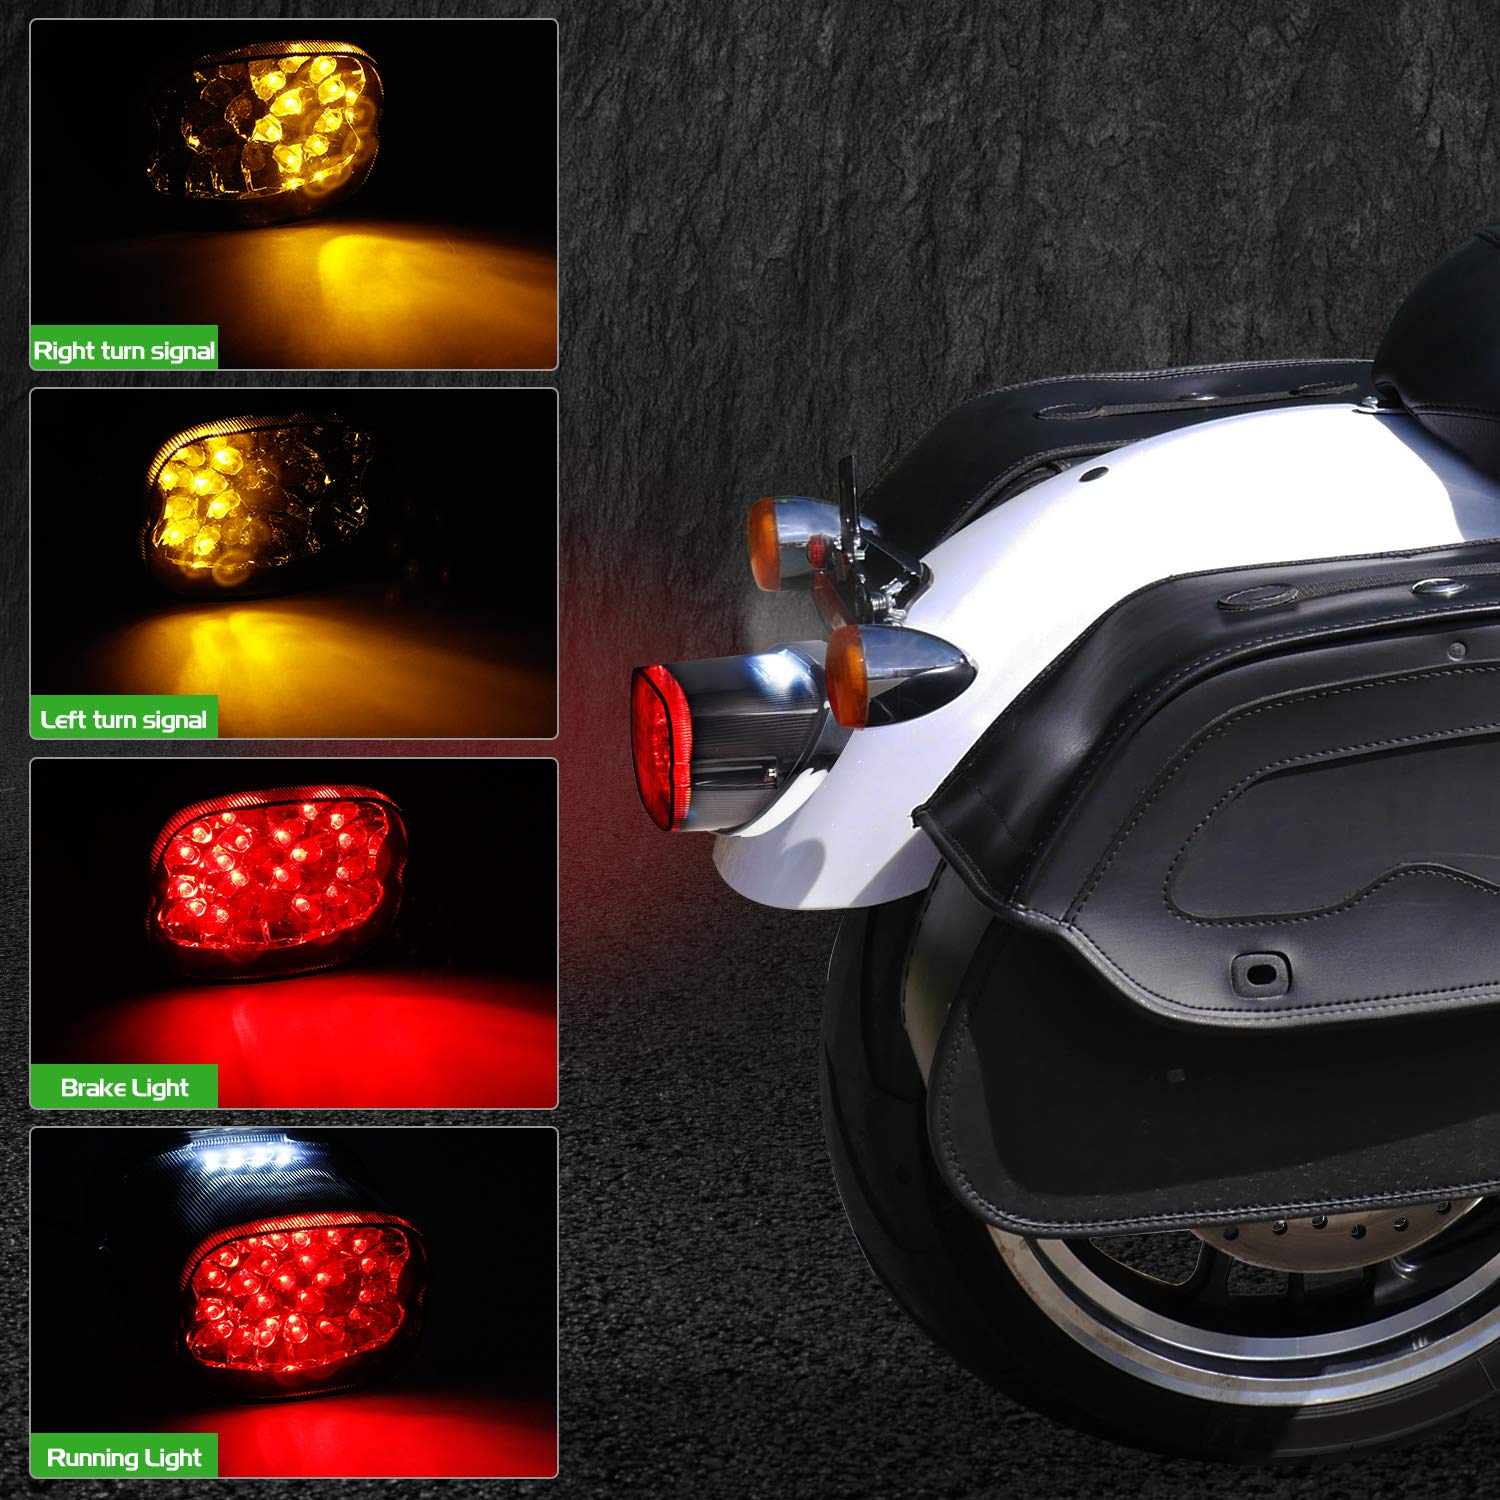 NTHREEAUTO Smoked LED Tail Light Brake Turn Signal Lights Compatible with Harley Dyna Sportster Street Bob Road King Nightster Fat Boy Low Profile Taillights